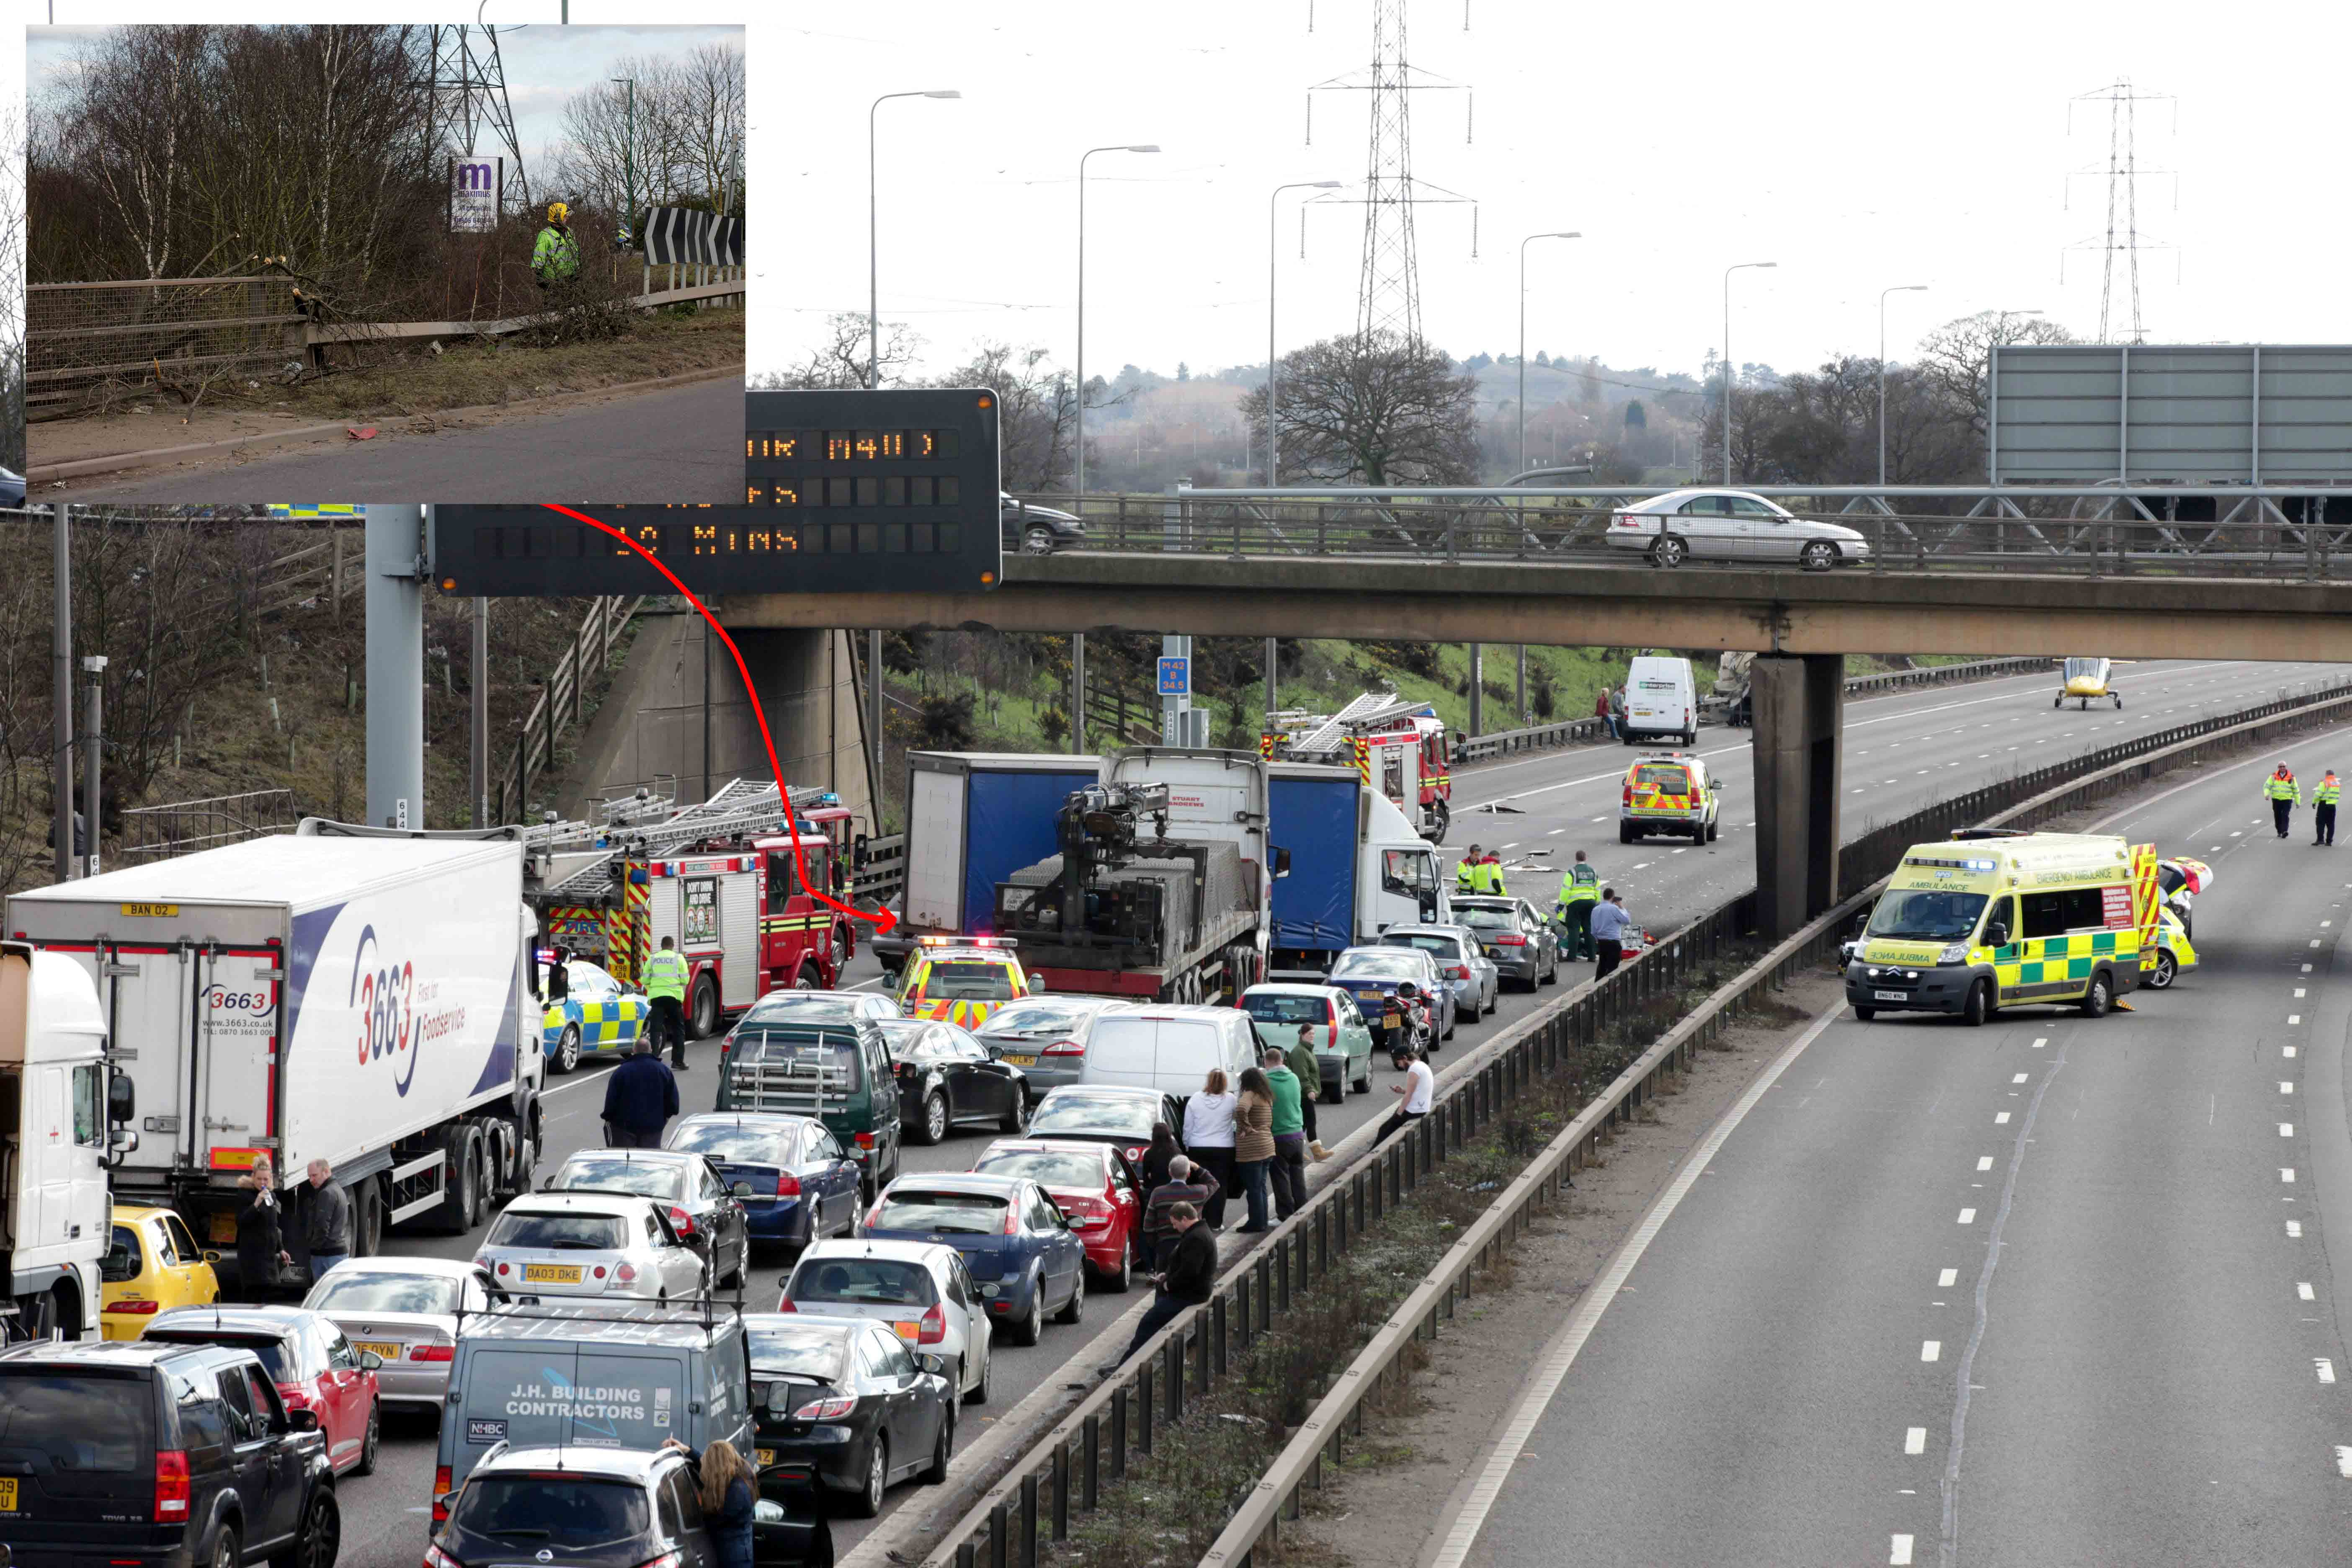 POLICE CAR ON EMERGENCY CALL CAUSED TRAFFIC CHAOS